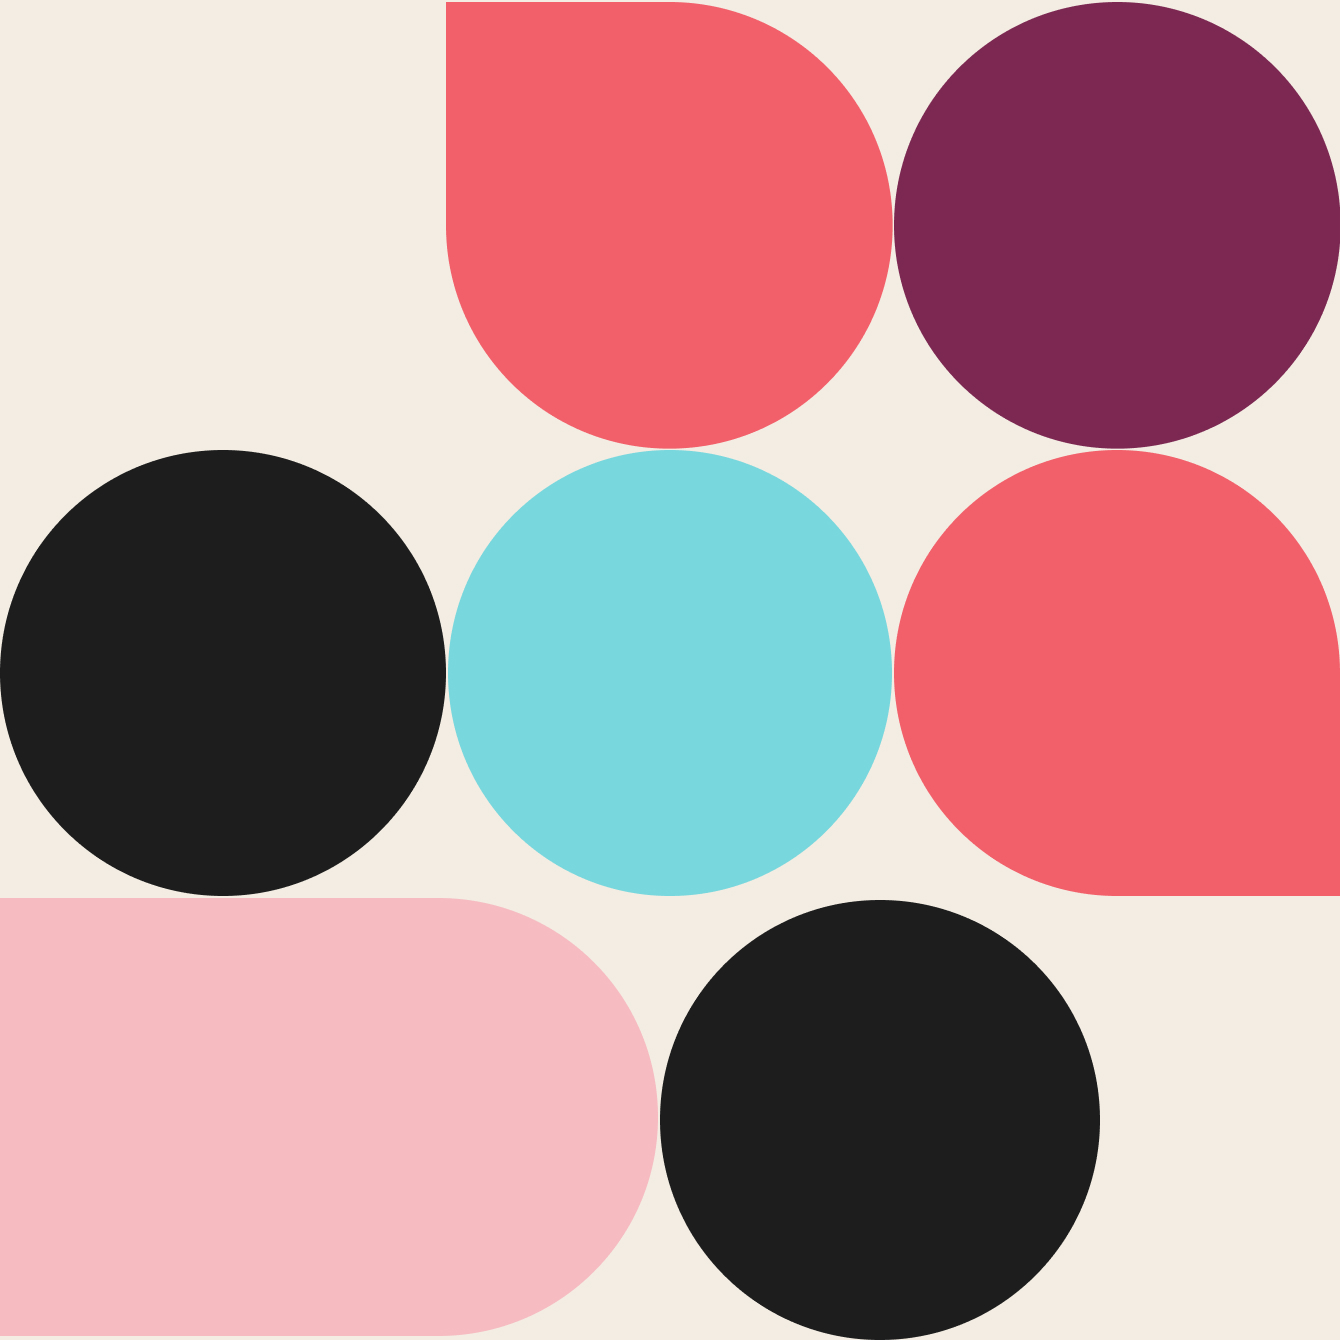 colorful shapes with Slack logo